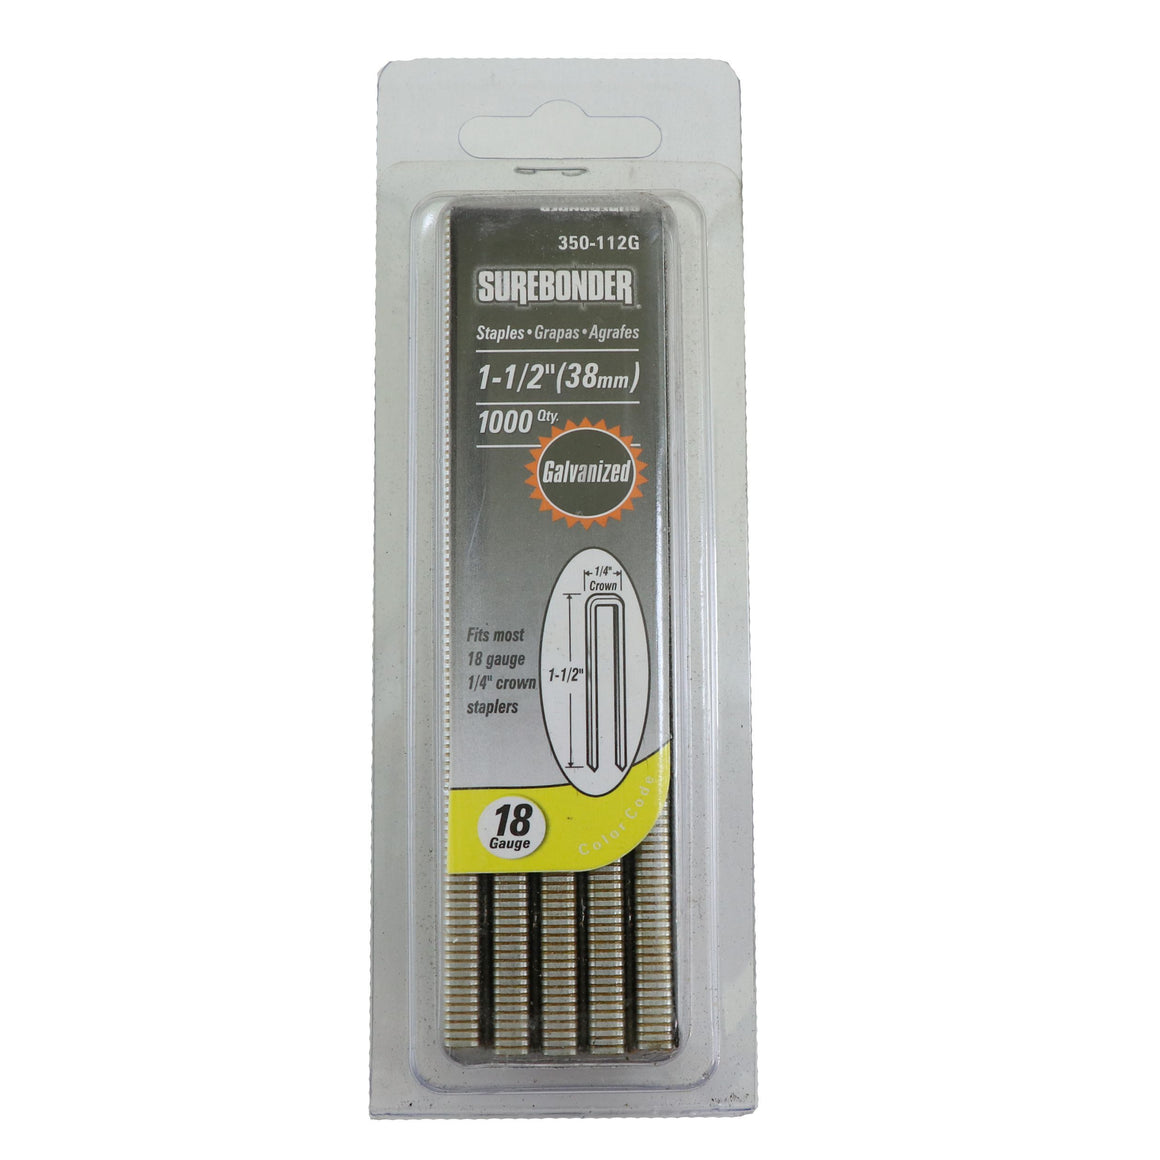 "350-112G Heavy Duty 18 Gauge Staples - 1/4"" Crown, 1-1/2"" Length - 1000 Count - Surebonder"